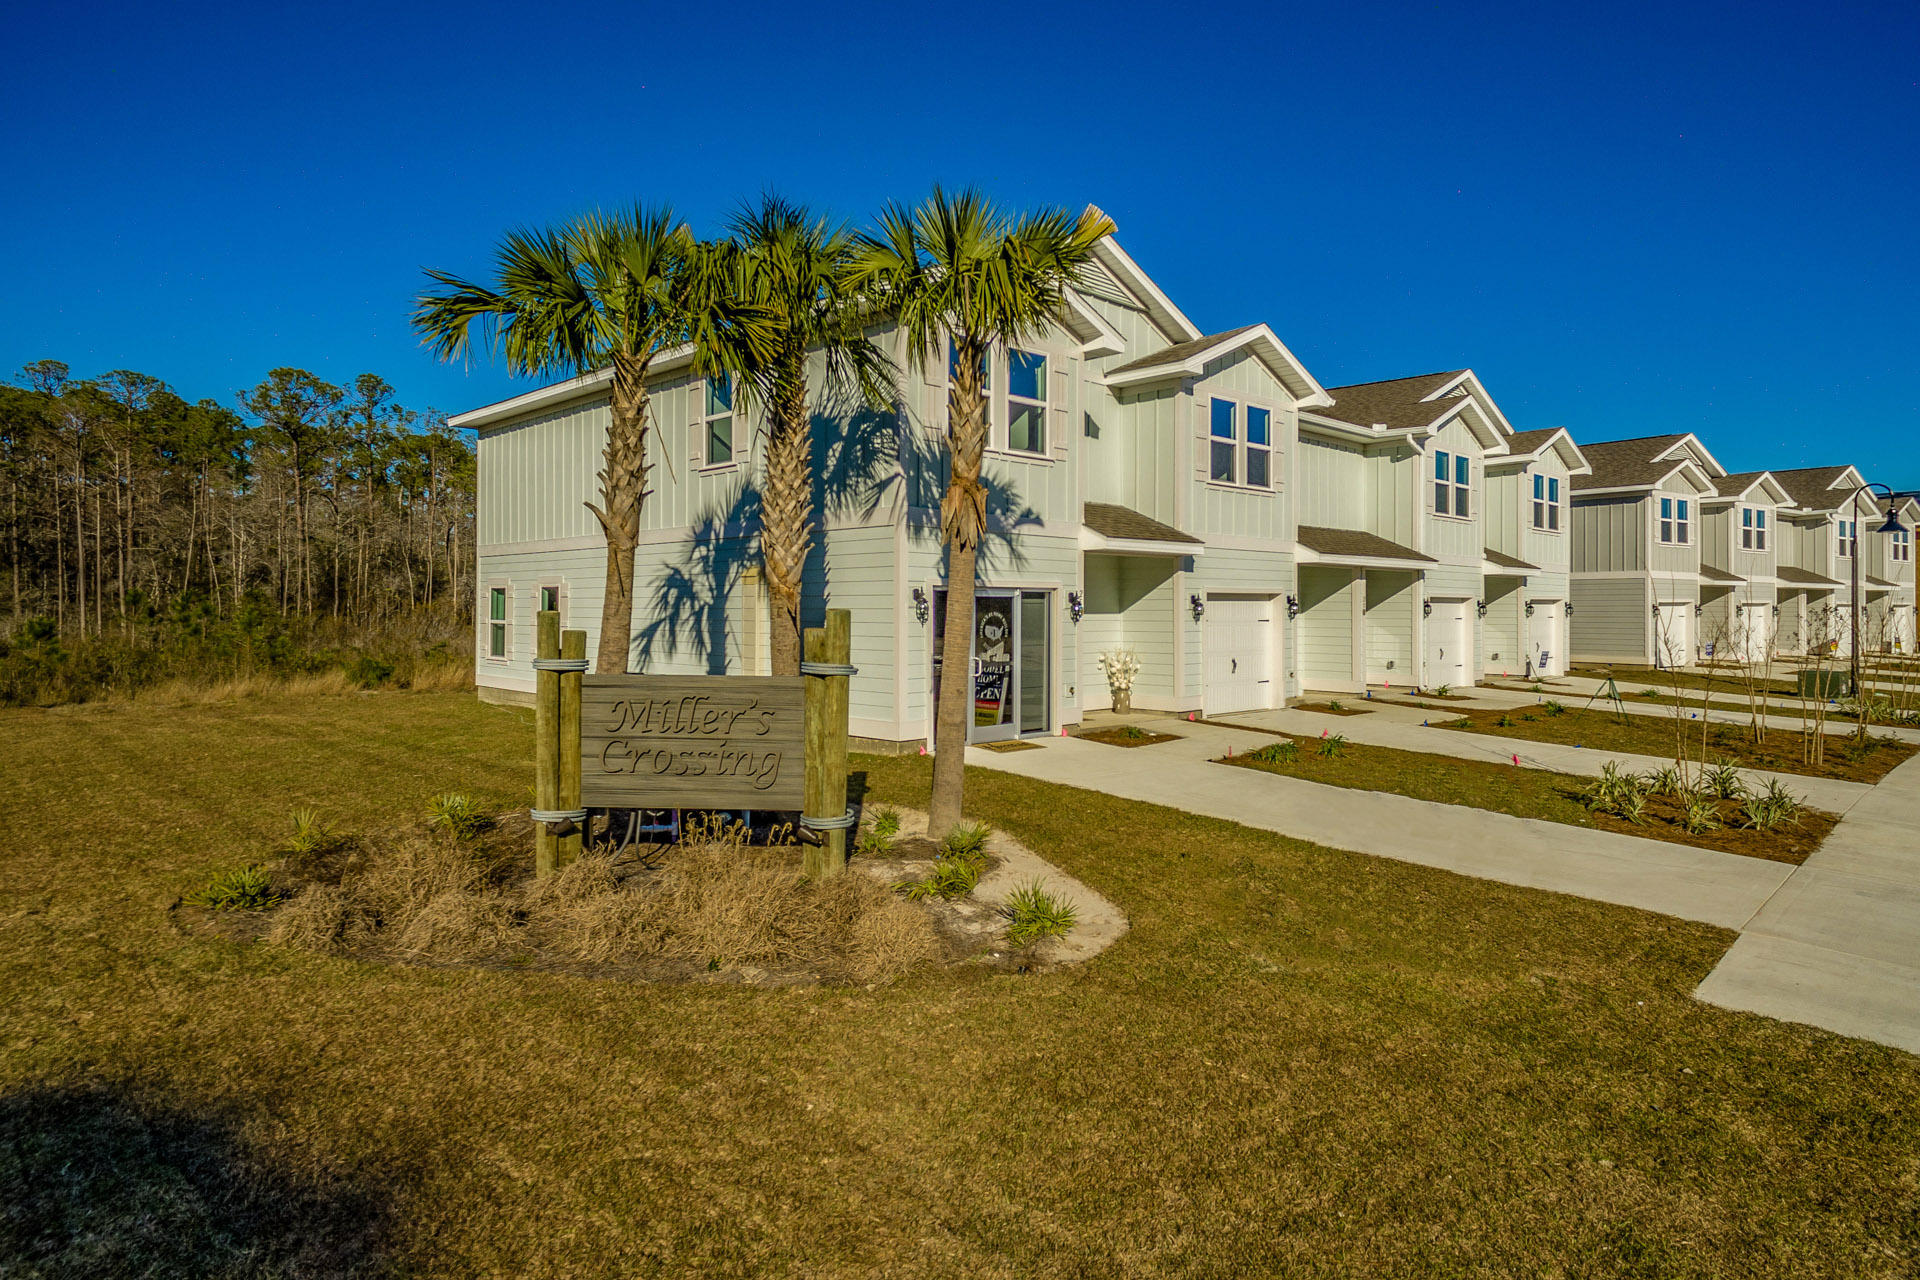 AMAZING OPPORTUNITY to own new construction with introductory pricing in South Walton. Located just minutes away from famous CO Hwy 30a, some of the country's best beaches, incredible shopping, and world class dining. Miller's Crossing is in a central location to both Destin, and Panama City Beach, allowing you to enjoy the best of both worlds. Walking distance to Alaqua Unleashed Dog park, Padgett Park, nature trails and public library. Contract today to select colors for this beautiful home.  Seller is offering up to $7500 in closing costs with DHI Title and Mortgage Services.